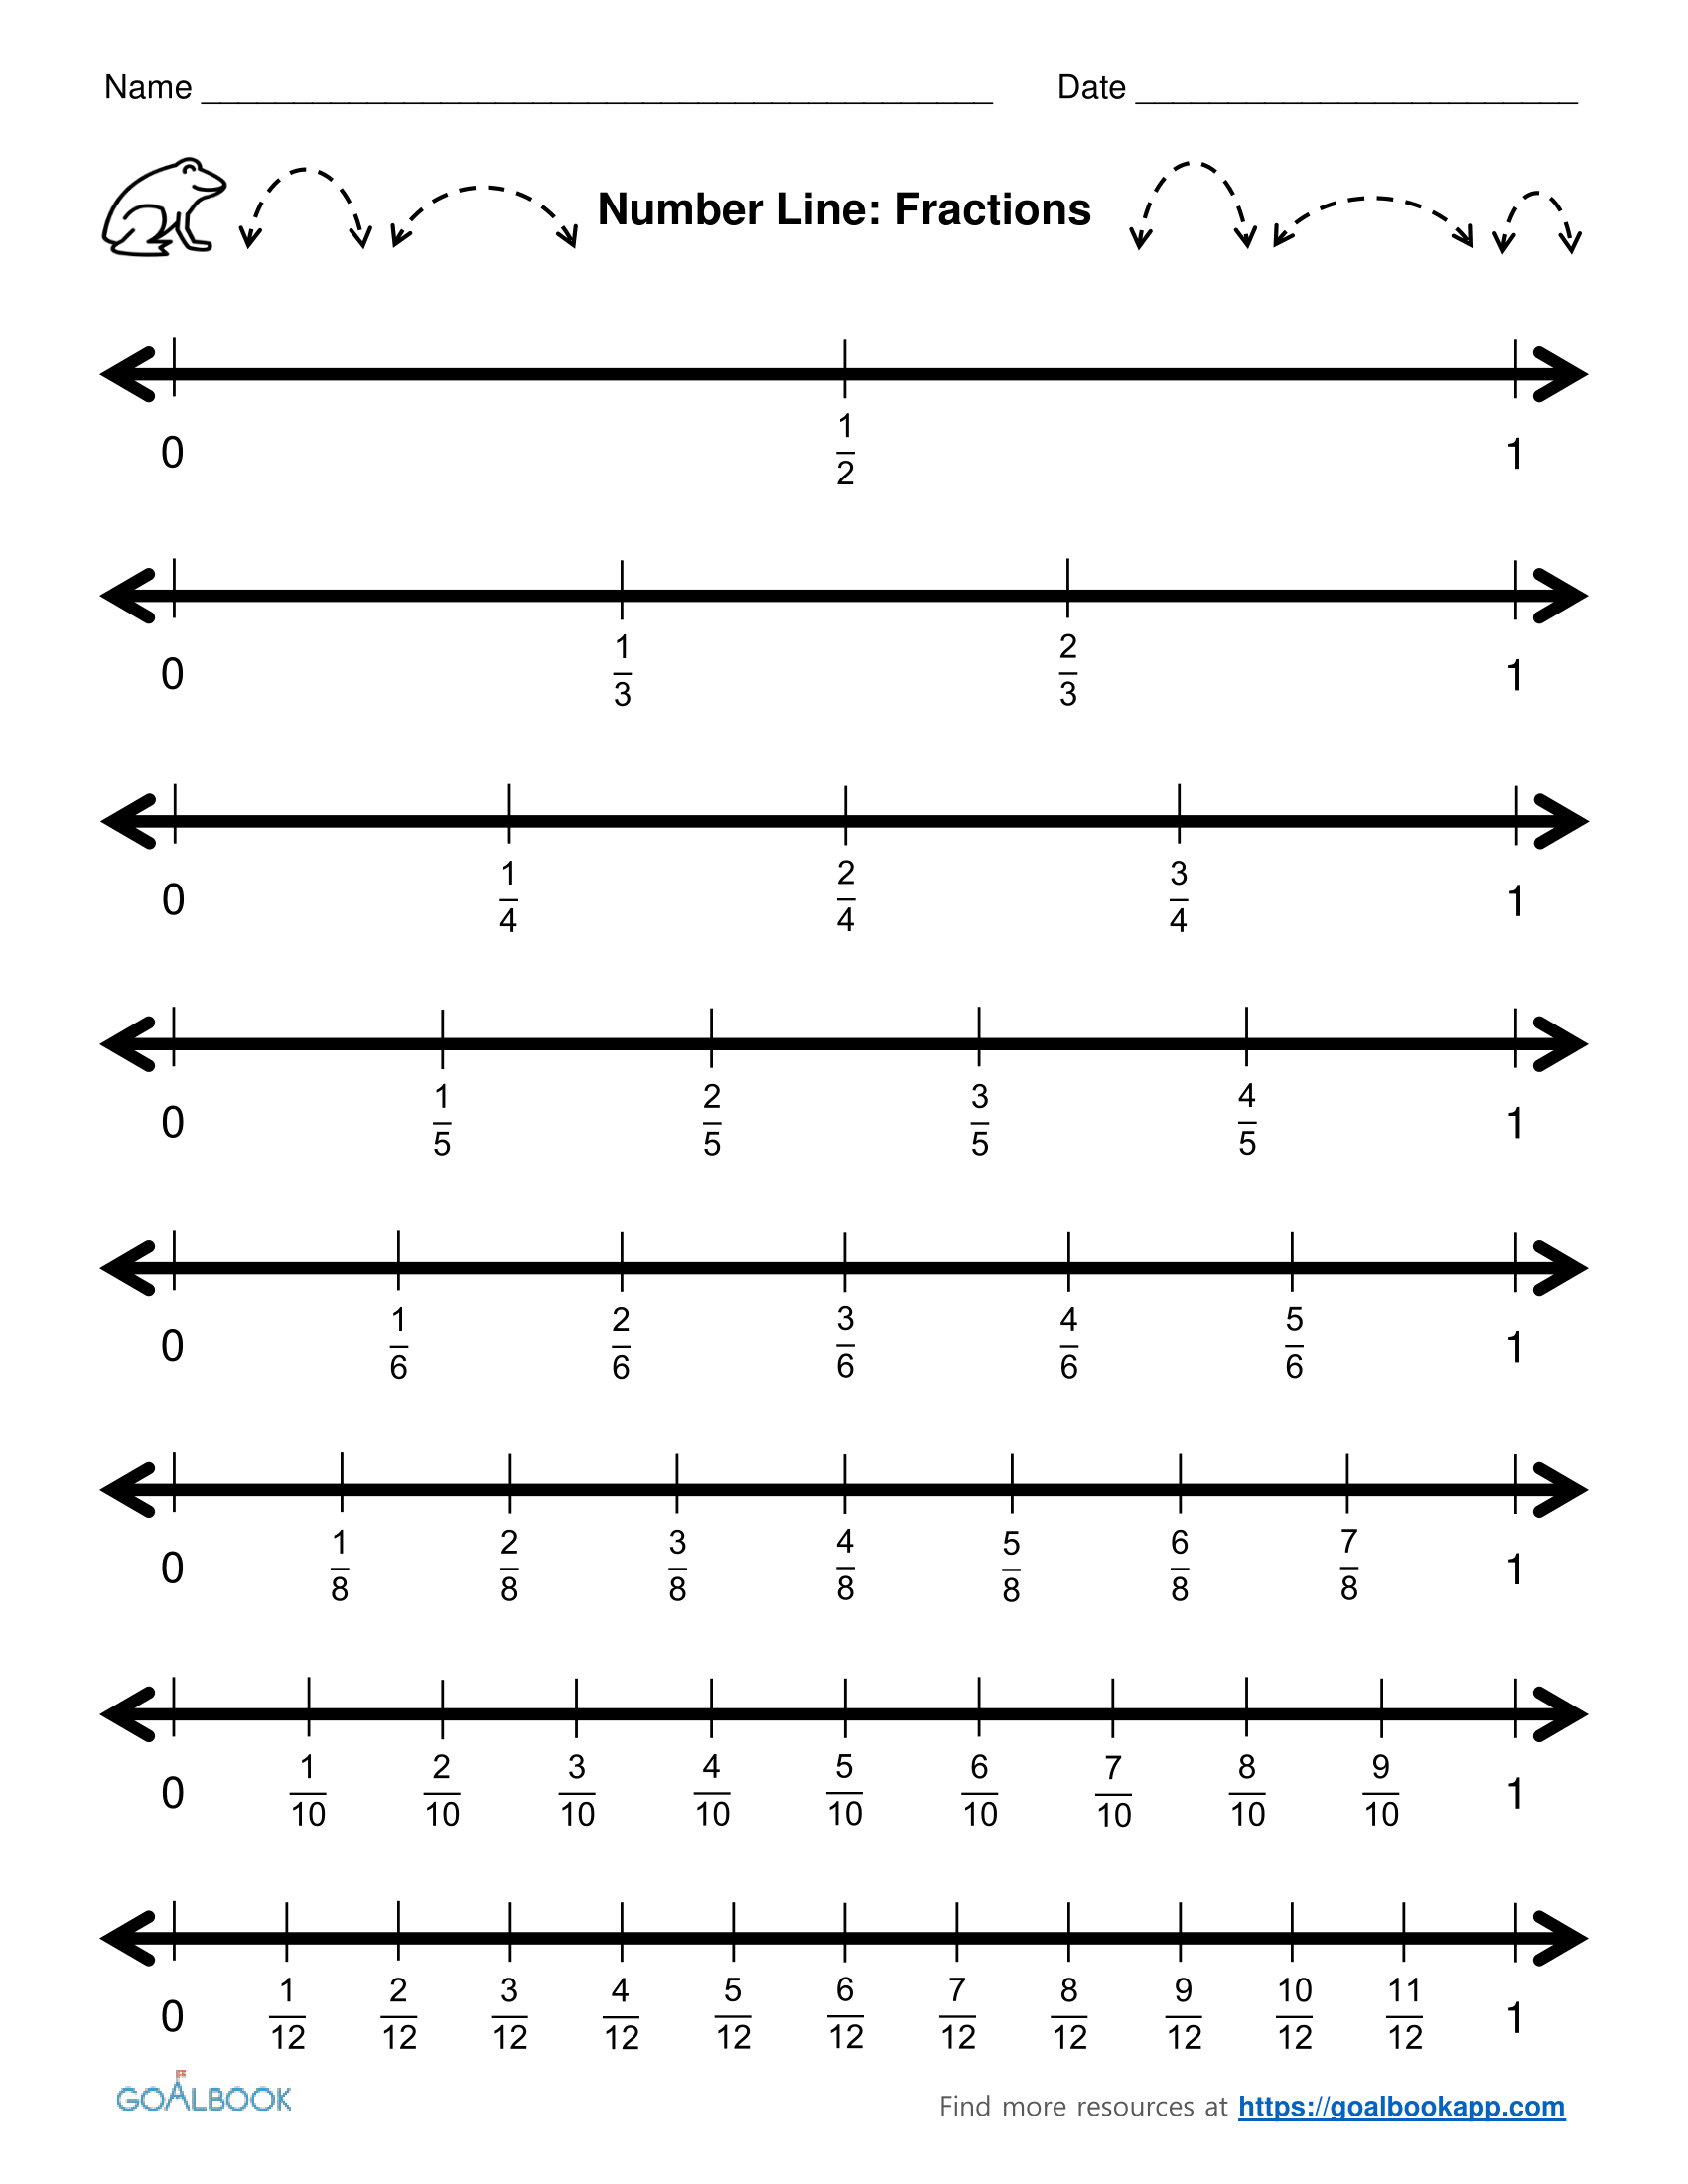 photograph regarding Fraction Number Line Printable identified as Variety Line UDL Programs - Goalbook Toolkit